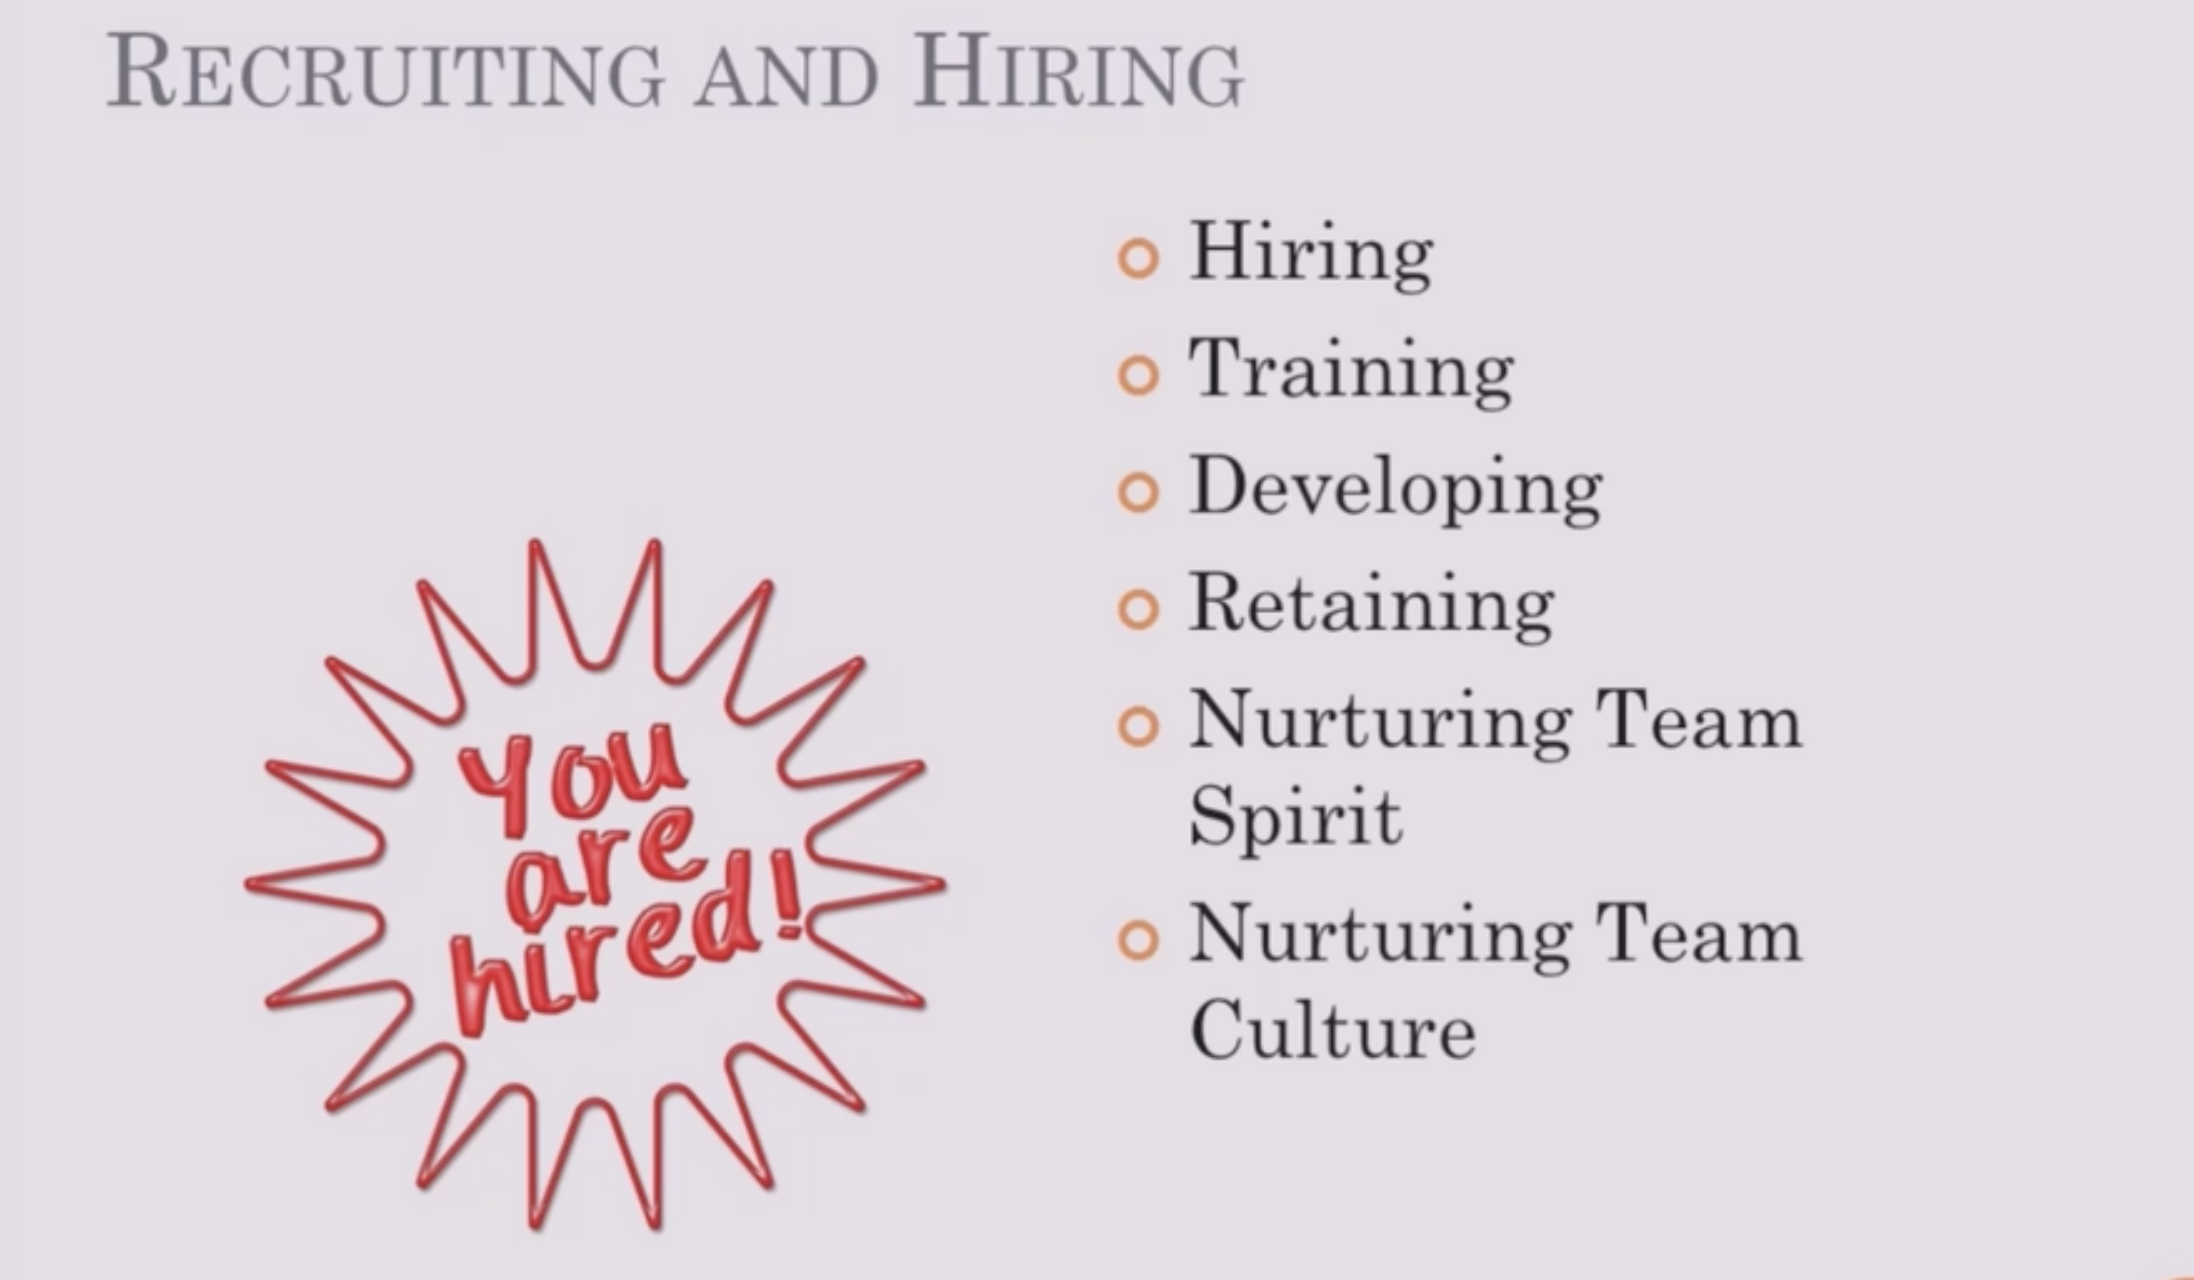 Skills For New Managers: Recruiting, Interviewing and Hiring